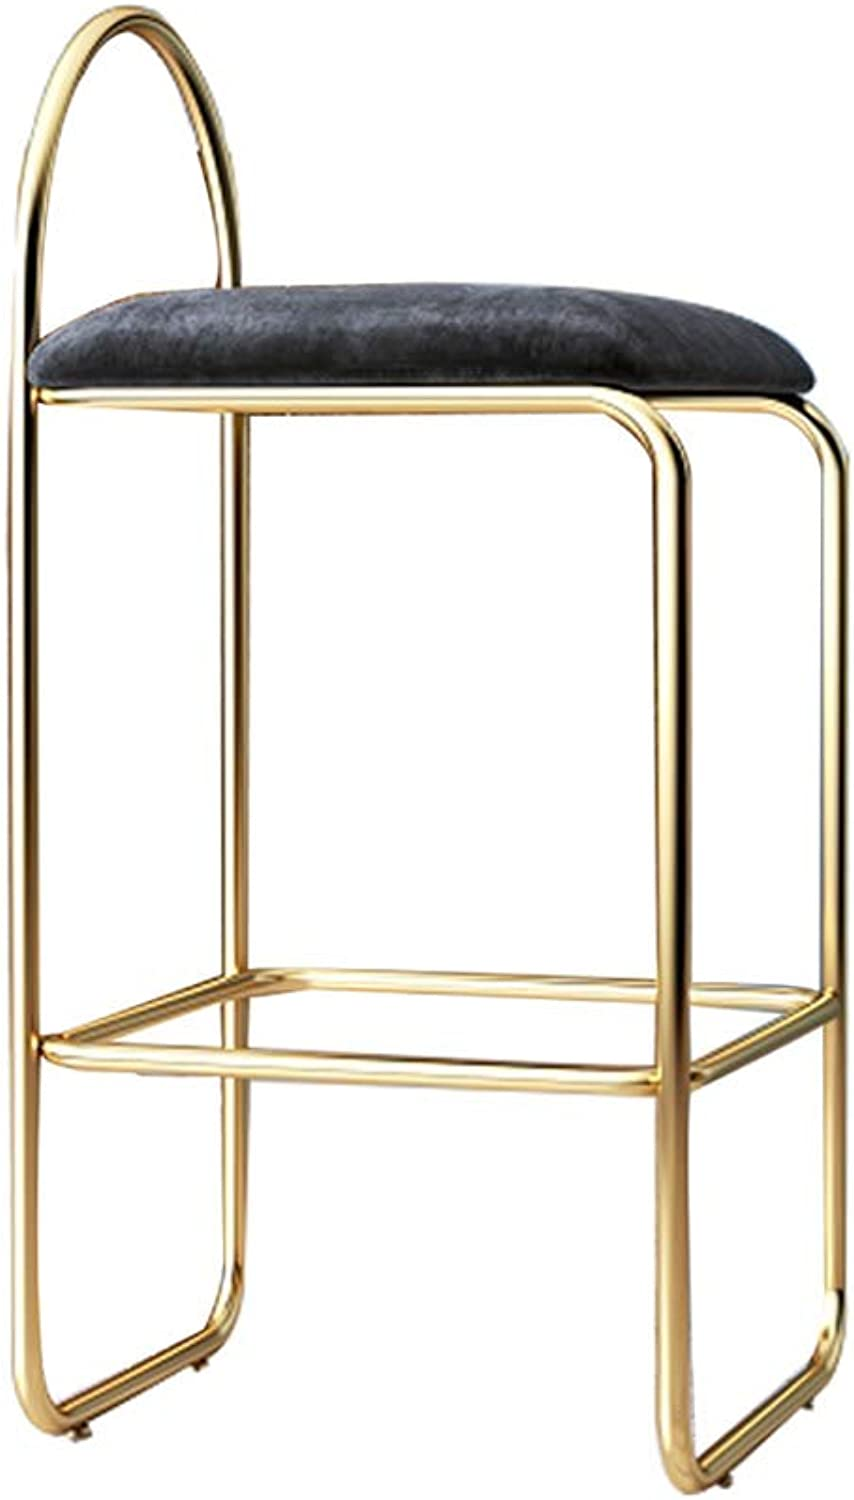 Gsej-Barstools Simple High Stool Modern Breakfast Chair, Comfortable Velvet Cushion, Load Capacity 150kg, Suitable for Kitchen, Dining Room, Black, Multi-Size Optional